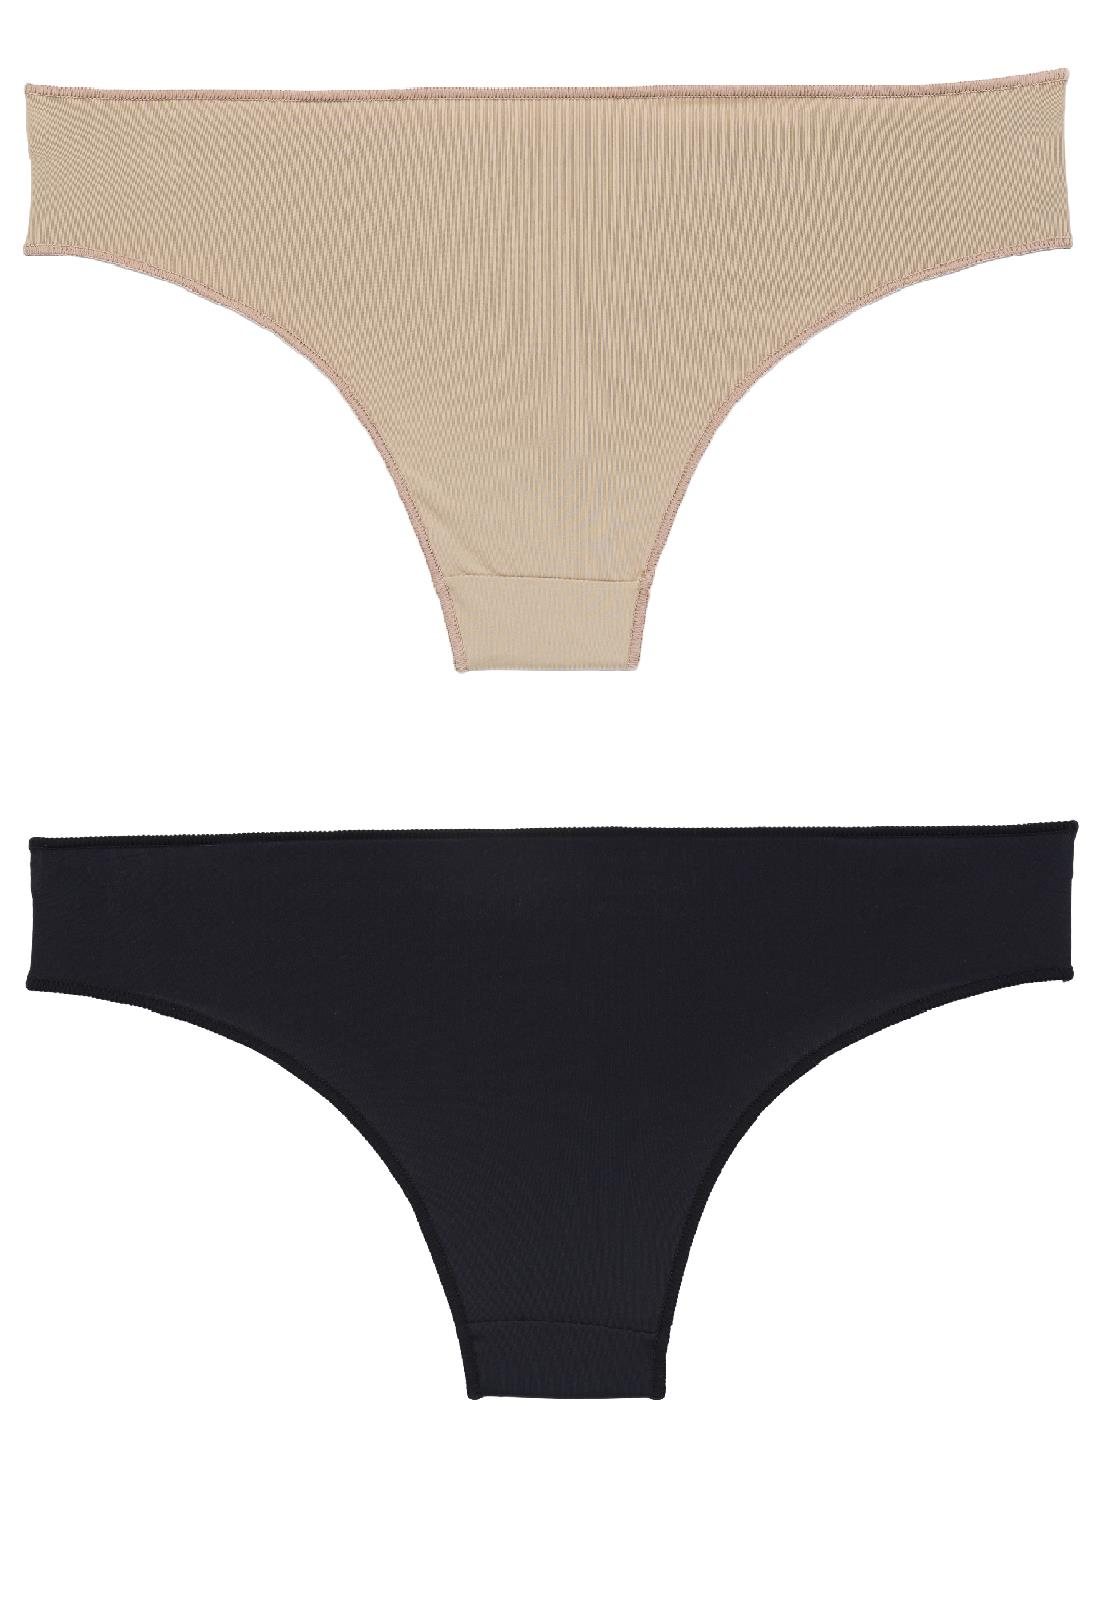 Kit Duas Calcinhas Básicas Bonjour by HOPE - Le Lingerie d1e1db84e5c